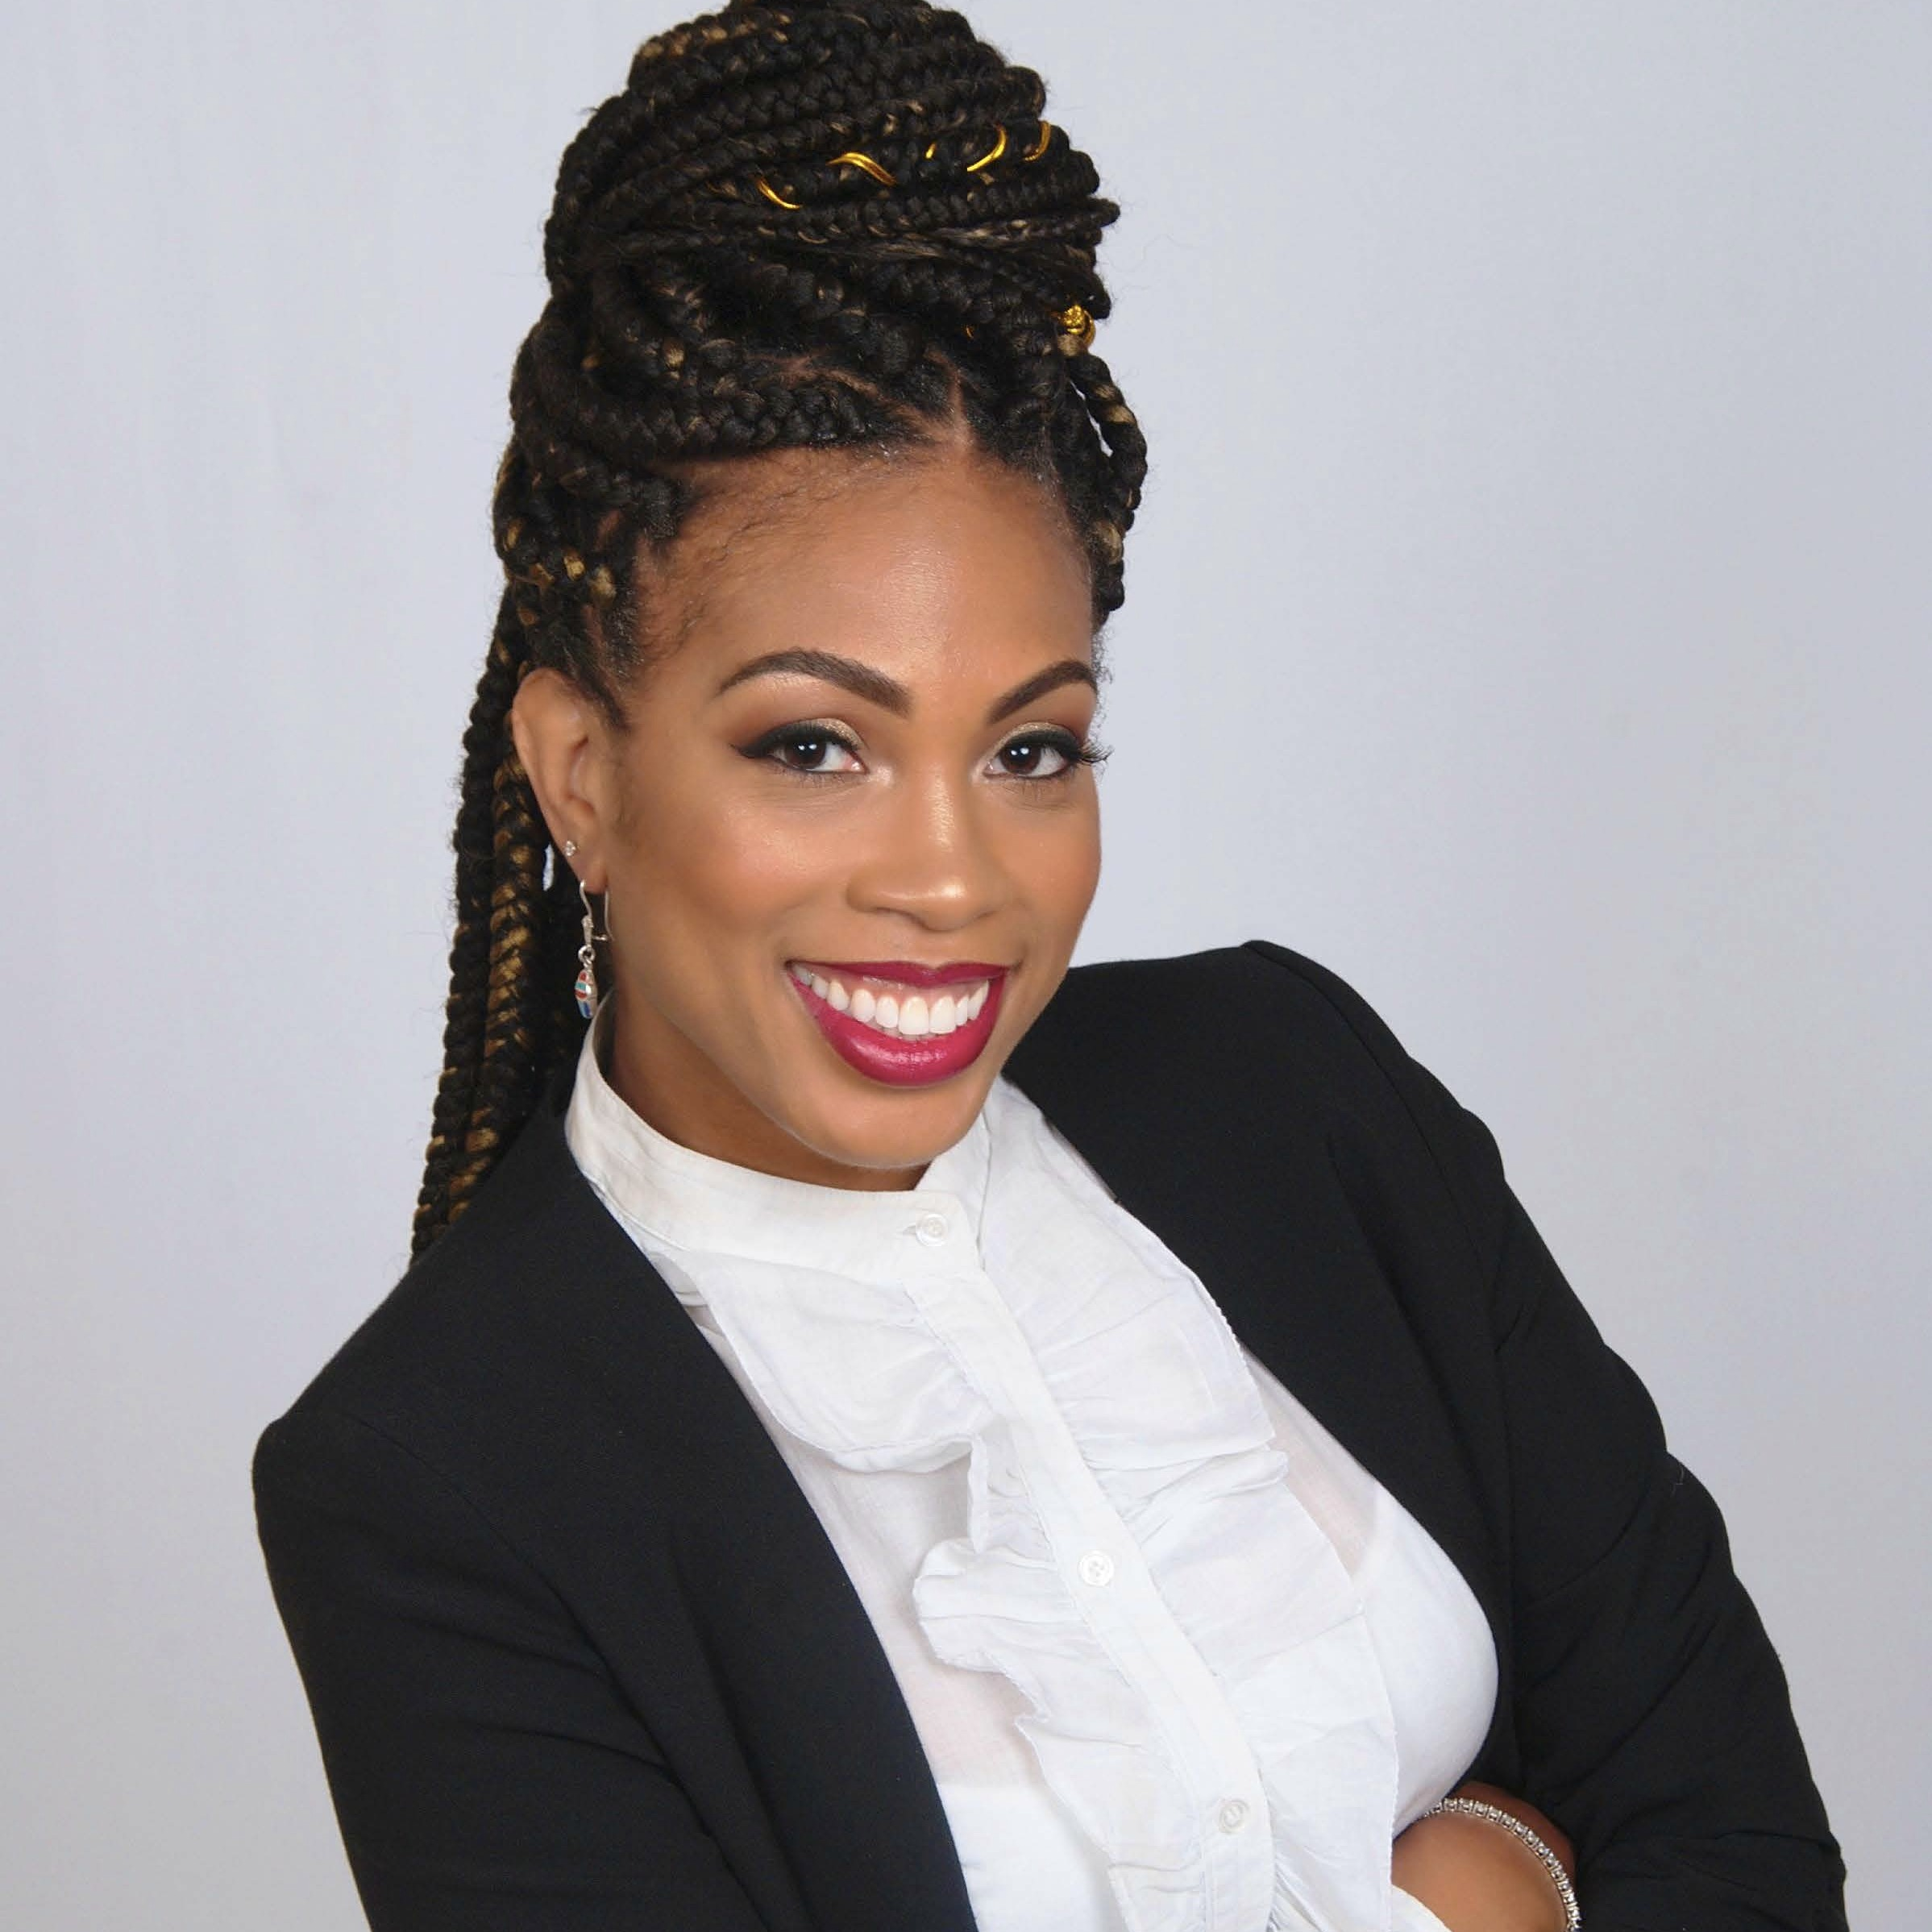 Ayana Jordan, a Black woman with long braided black hair and white blouse